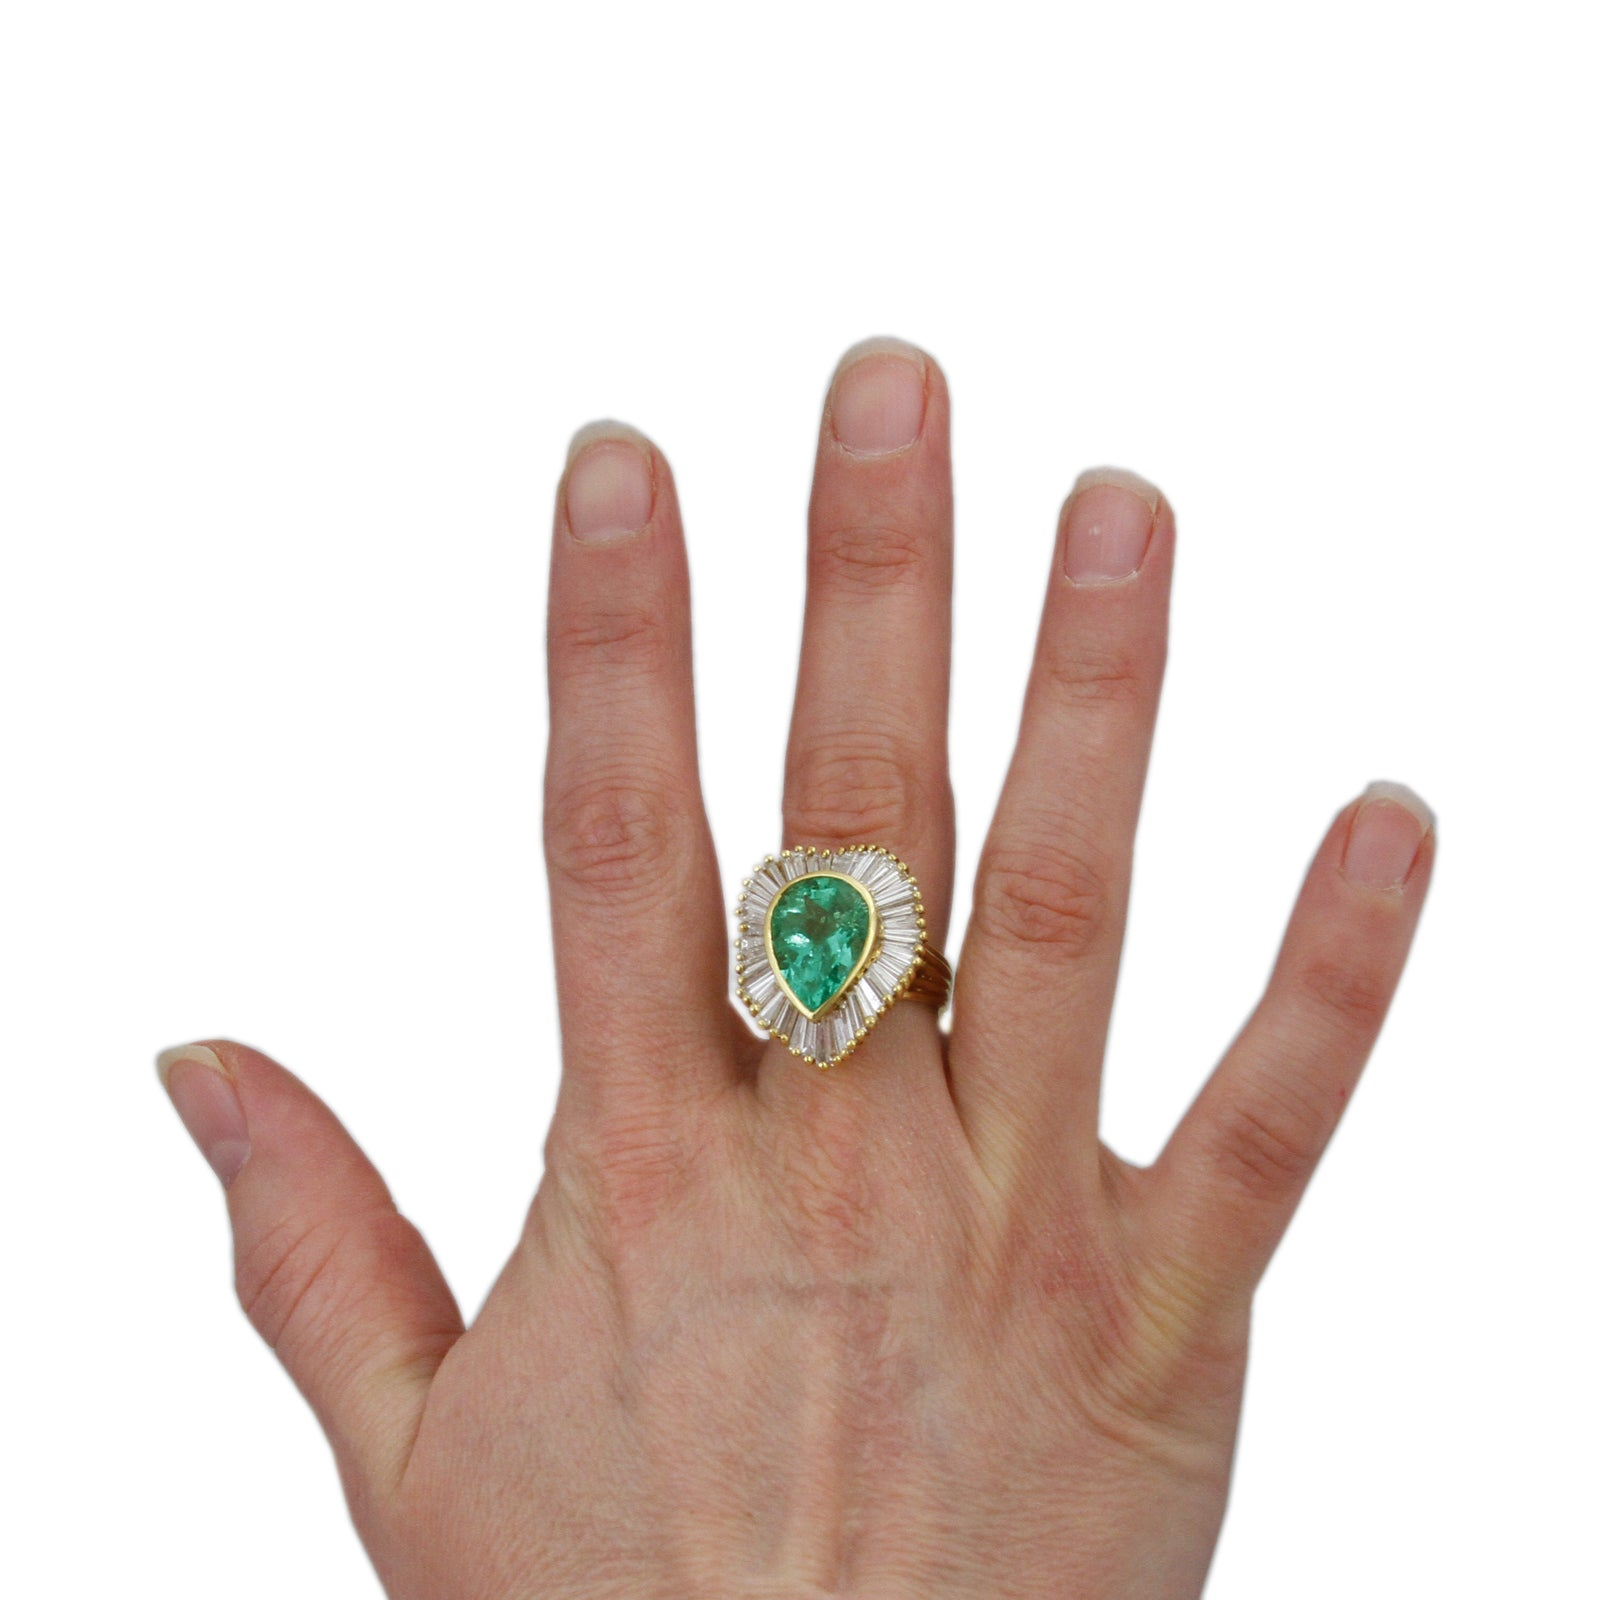 Pear Shaped 6.50ct Emerald Ring with Wavy 5.50cttw Baguette Halo-3